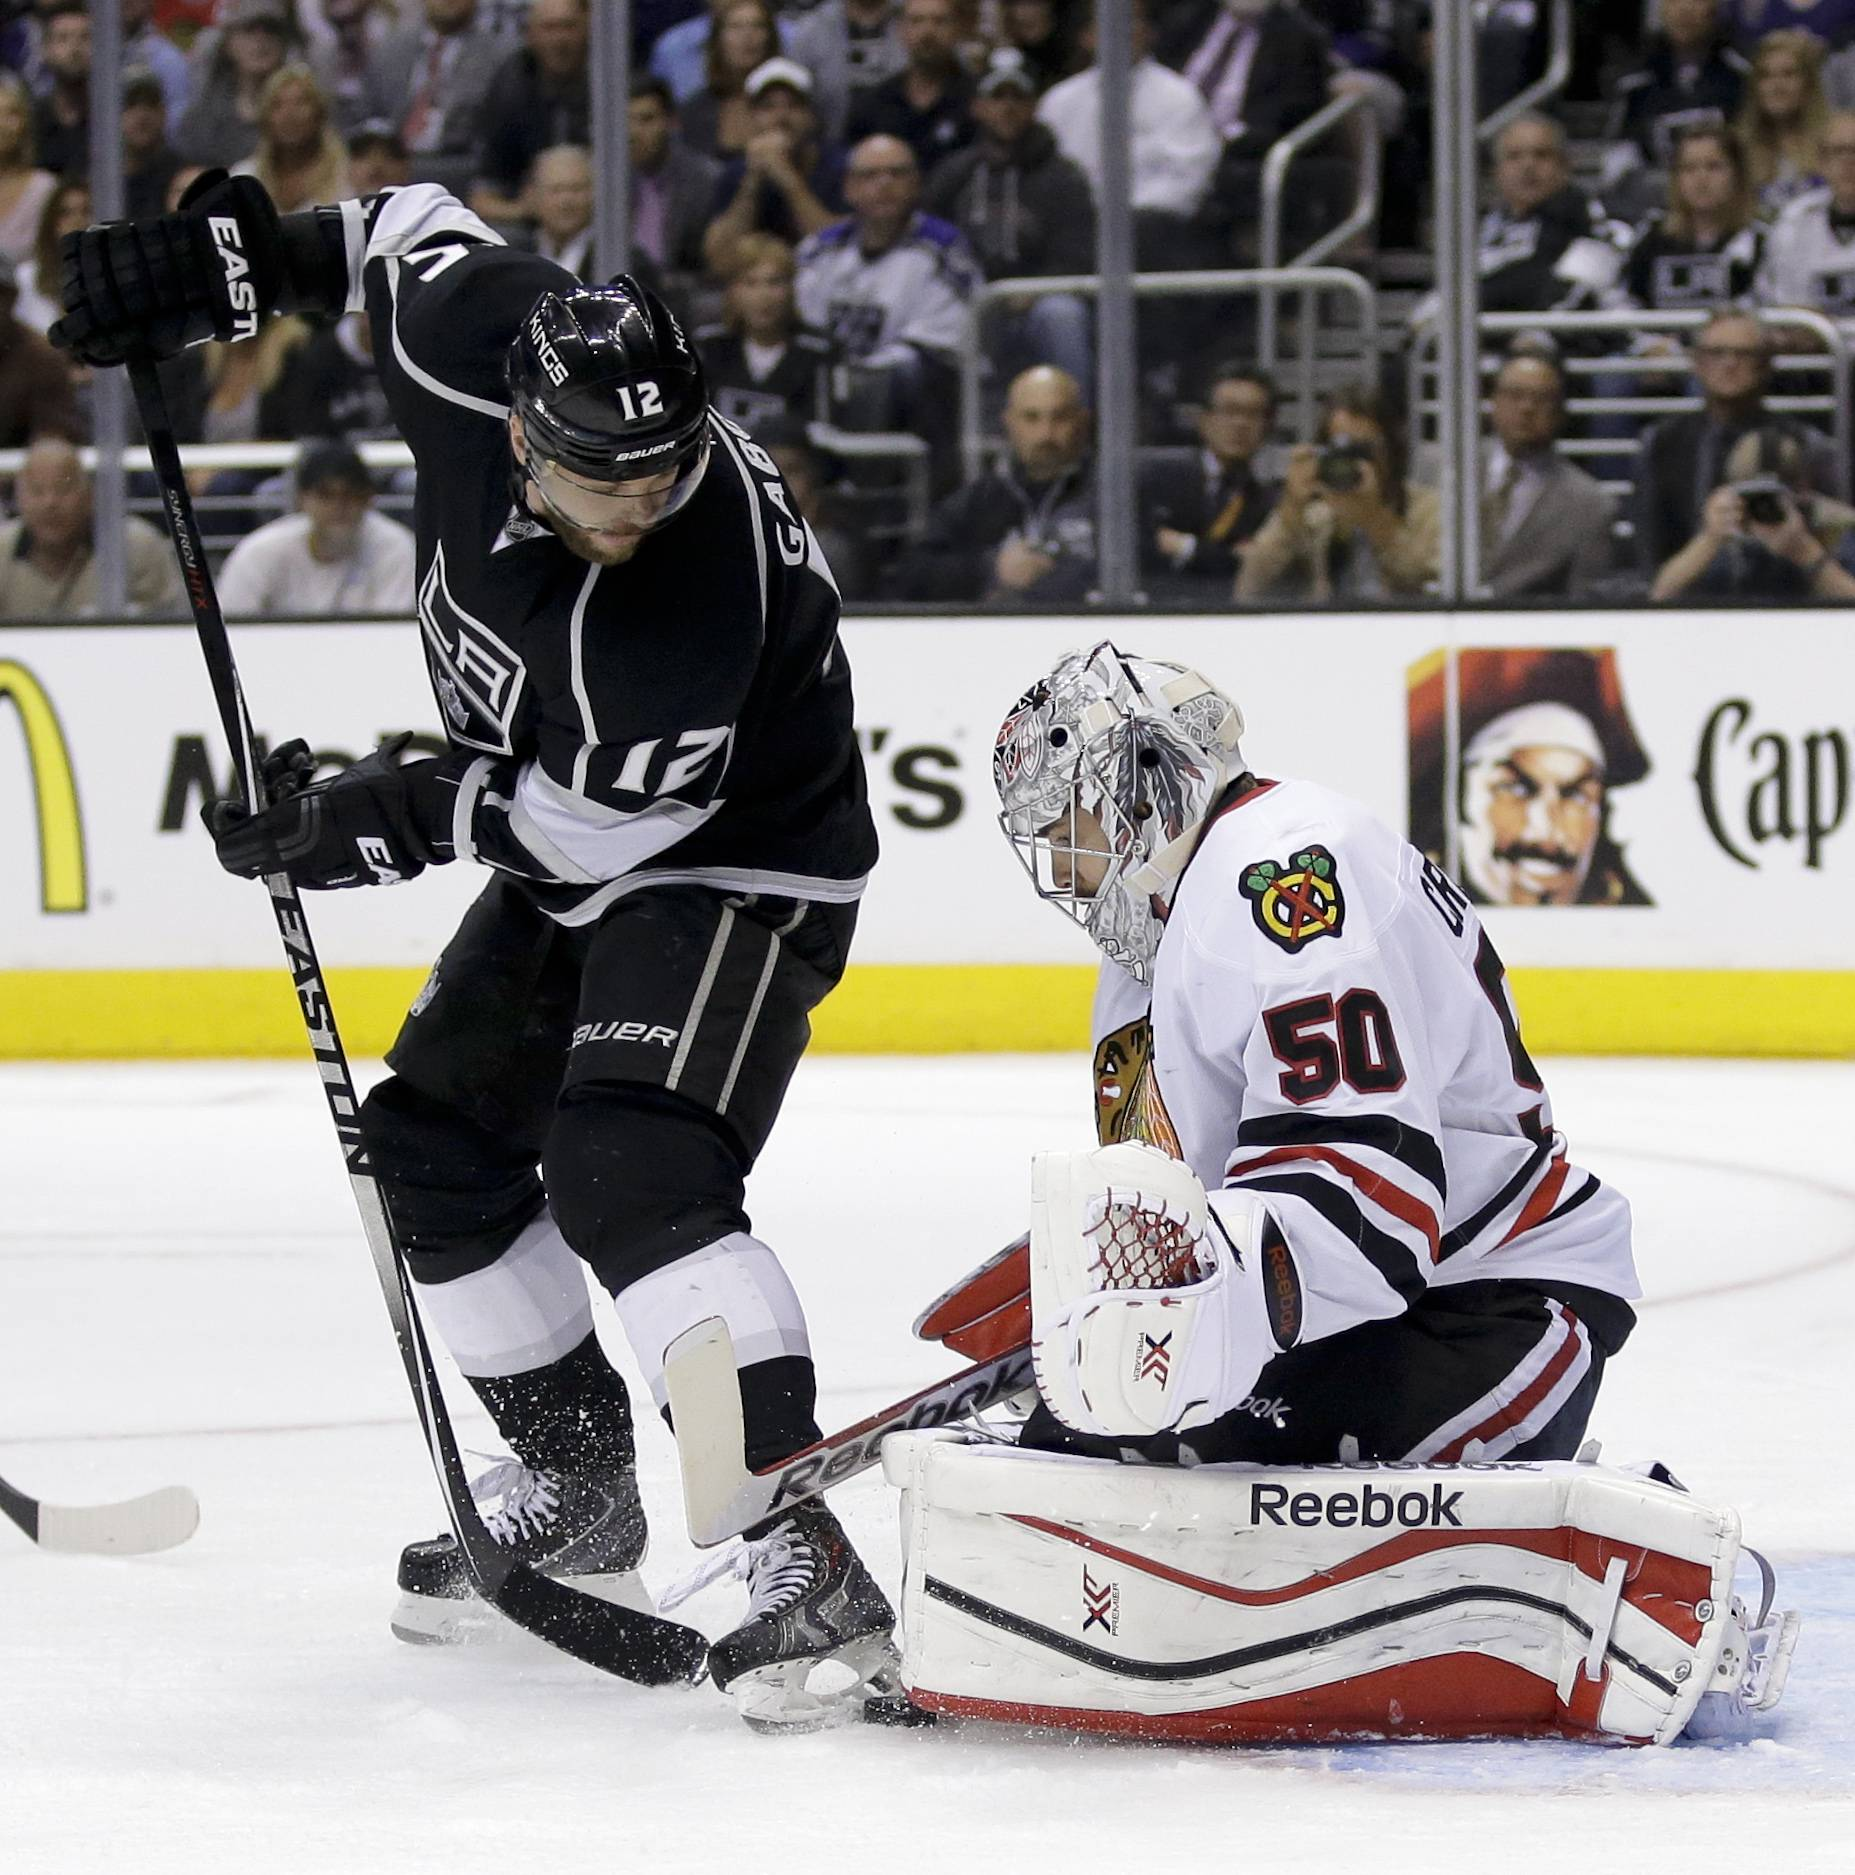 It was another big night for Blackhawks goalie Corey Crawford, here blocking a shot by the Kings' Marian Gaborik during the second period of the Hawks' 4-3 Game 6 victory.